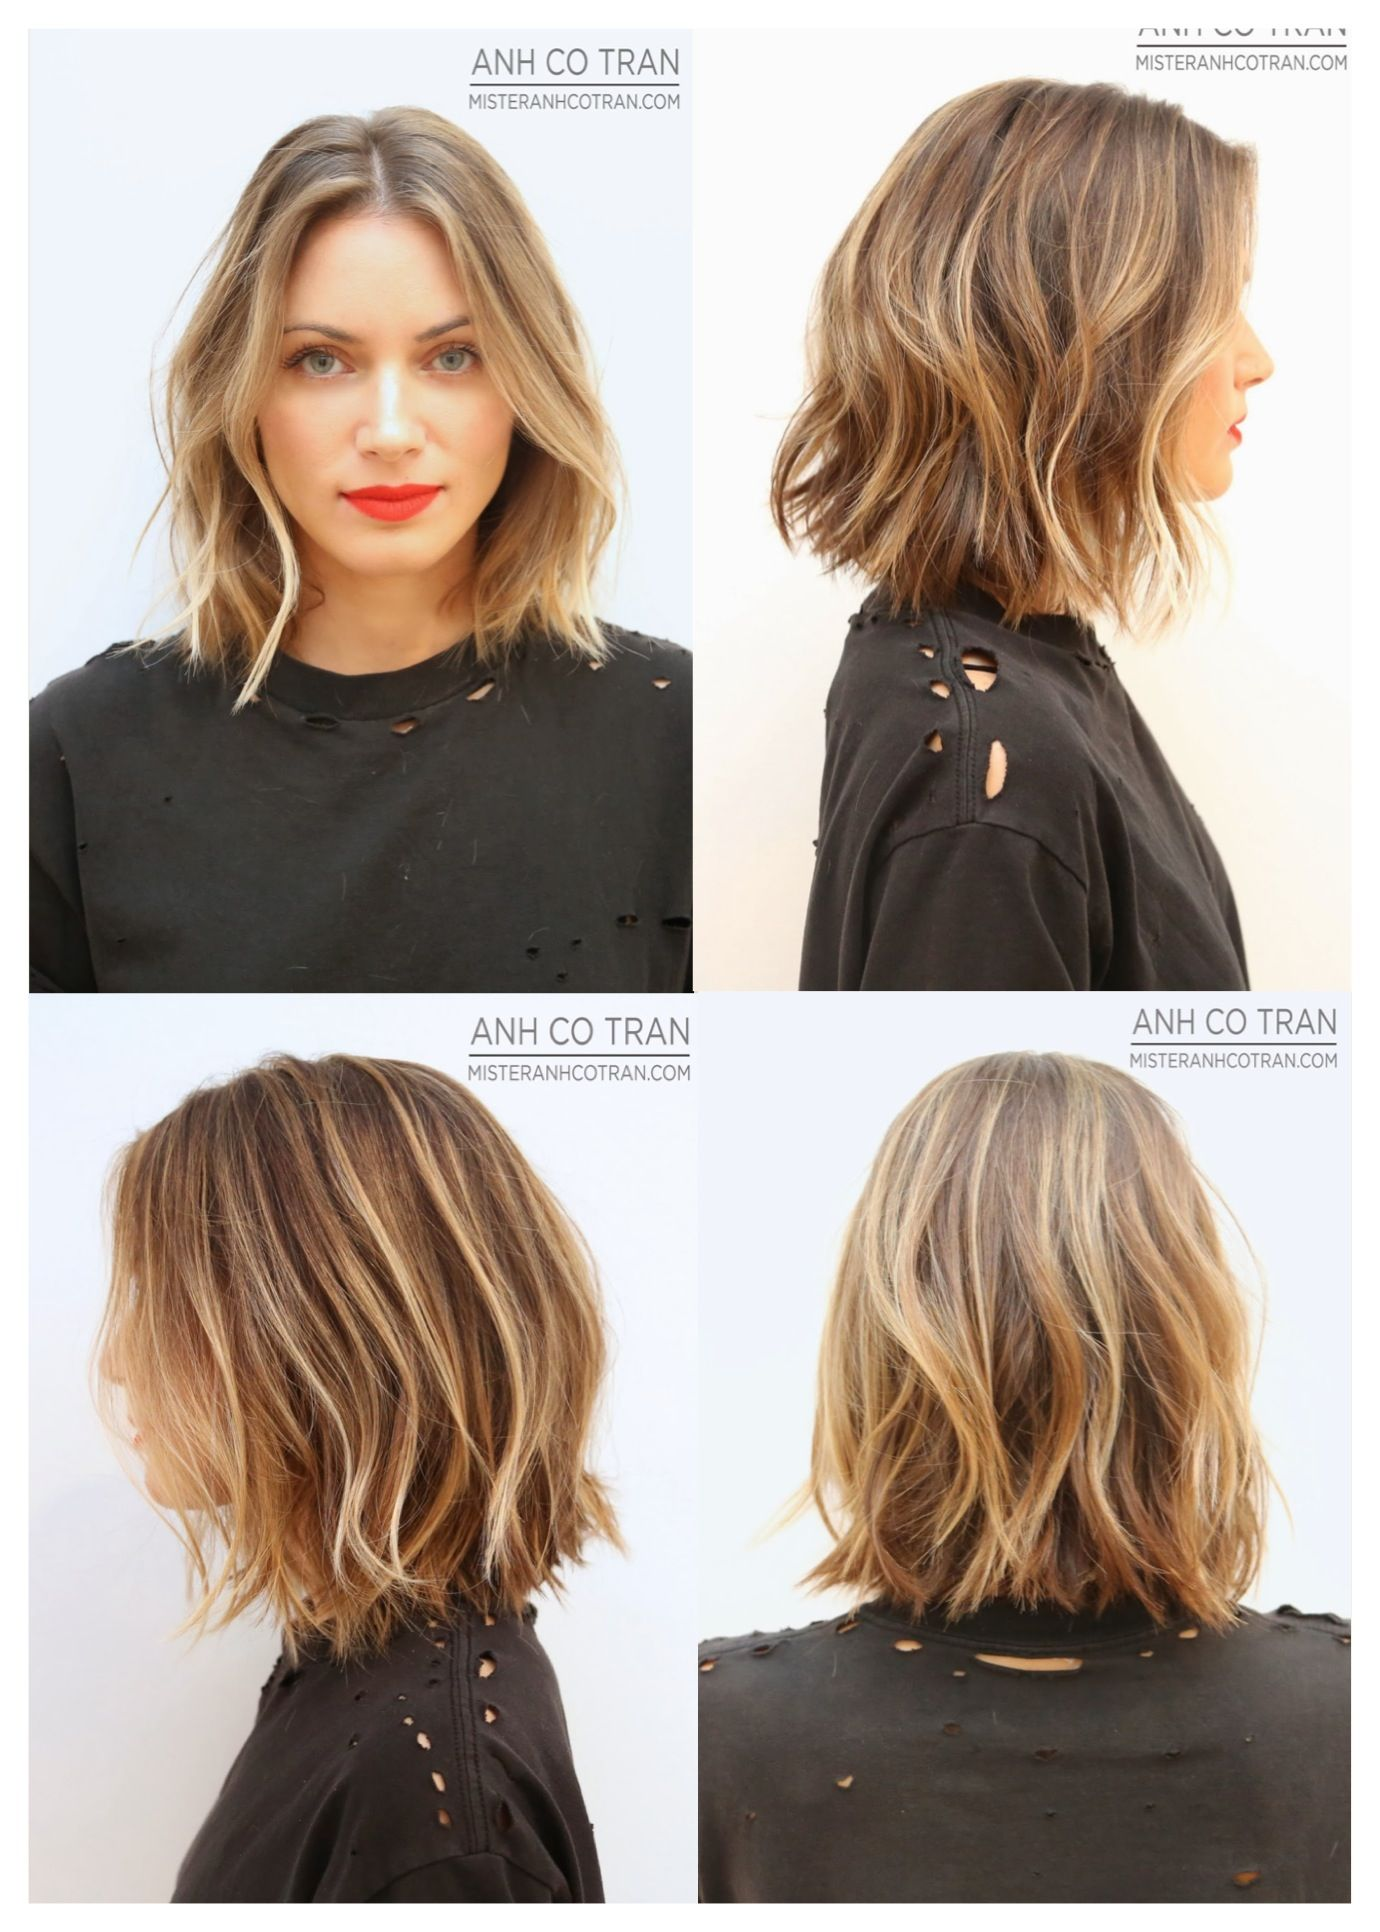 Medium, Short Hairstyles: Tousled Haircut